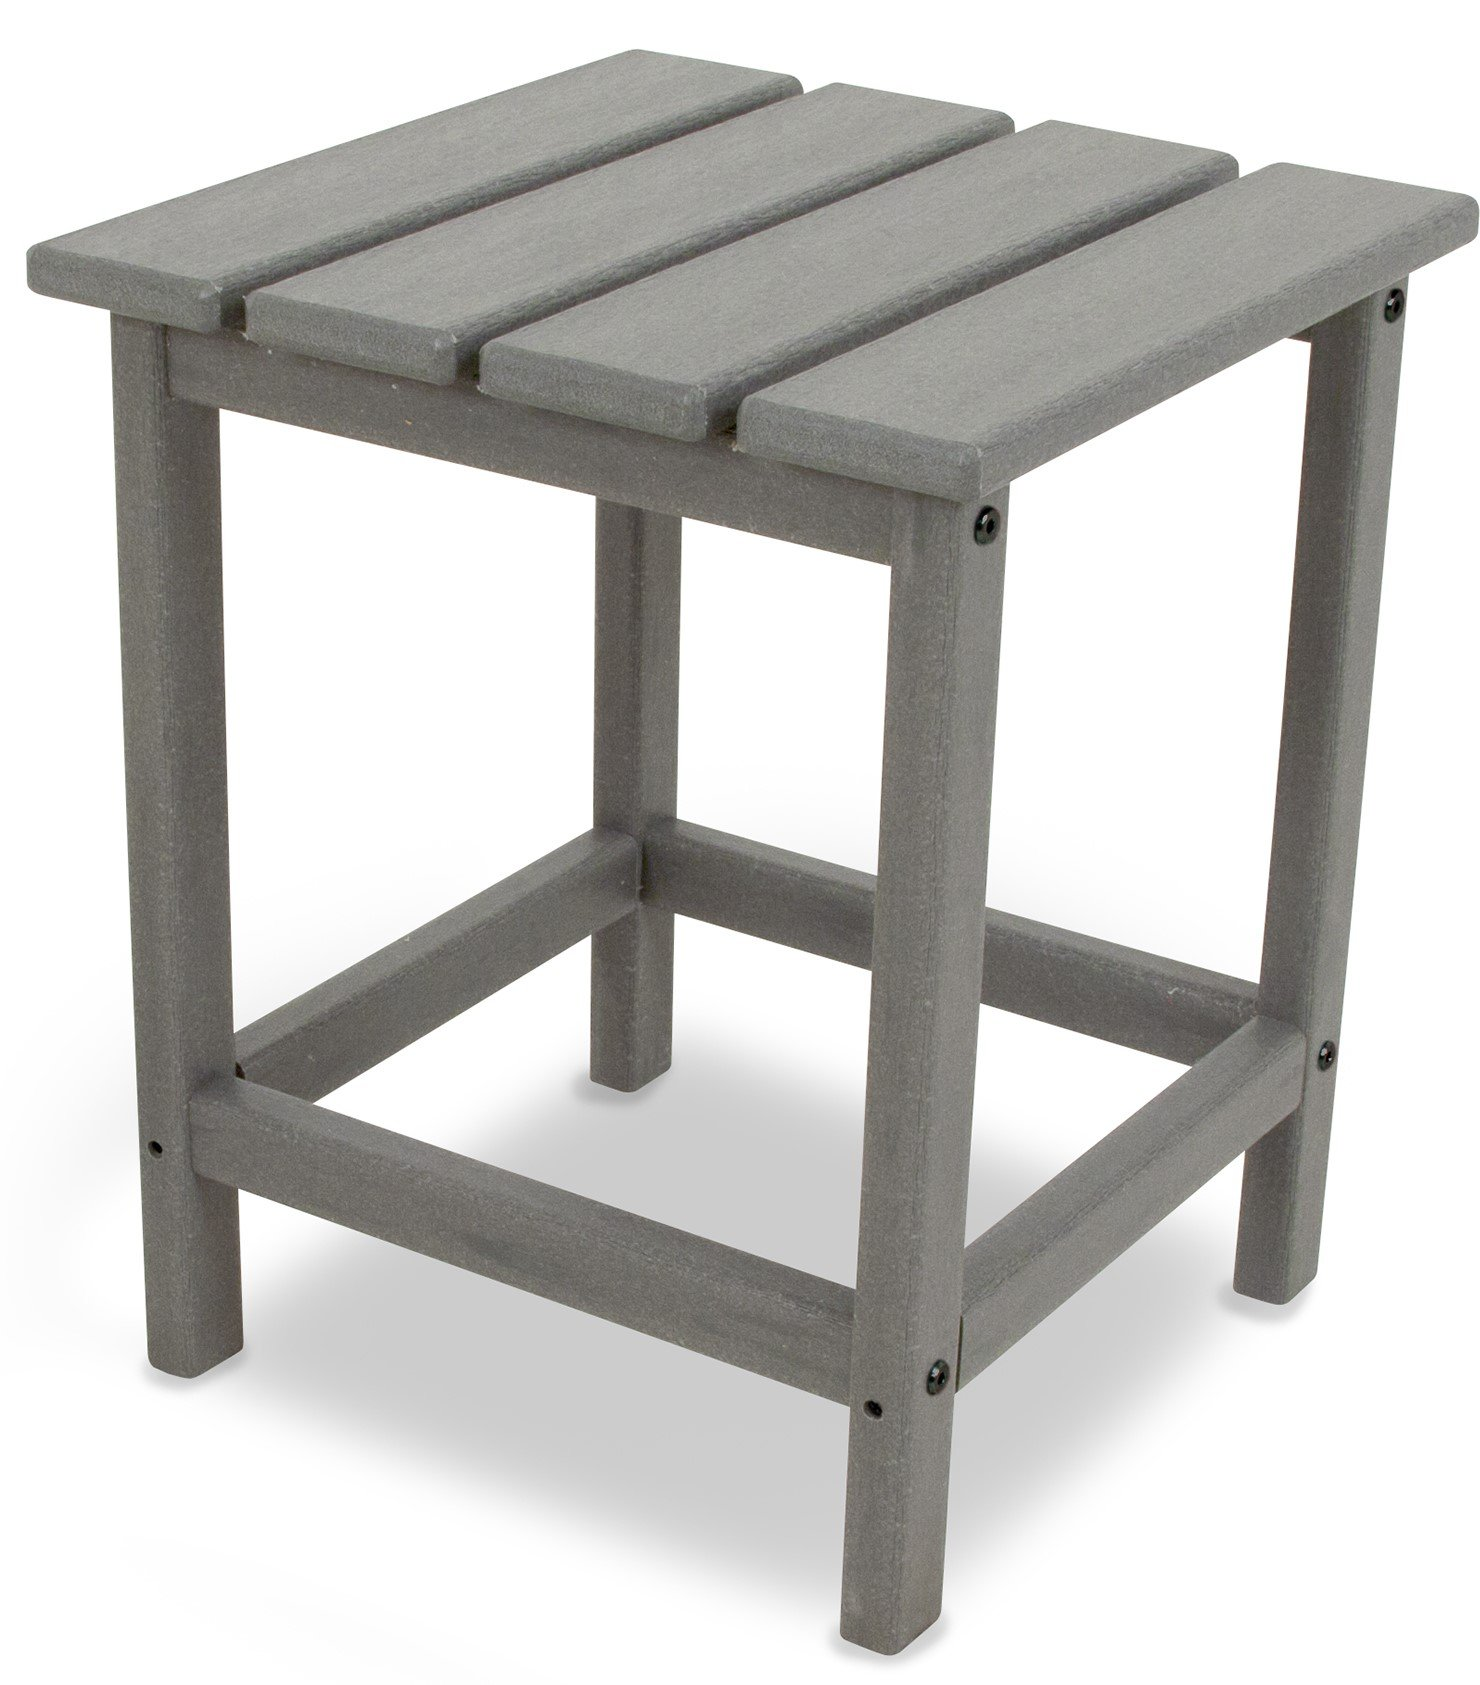 POLYWOOD ECT18GY Long Island Side Table, 18-Inch, Slate Grey